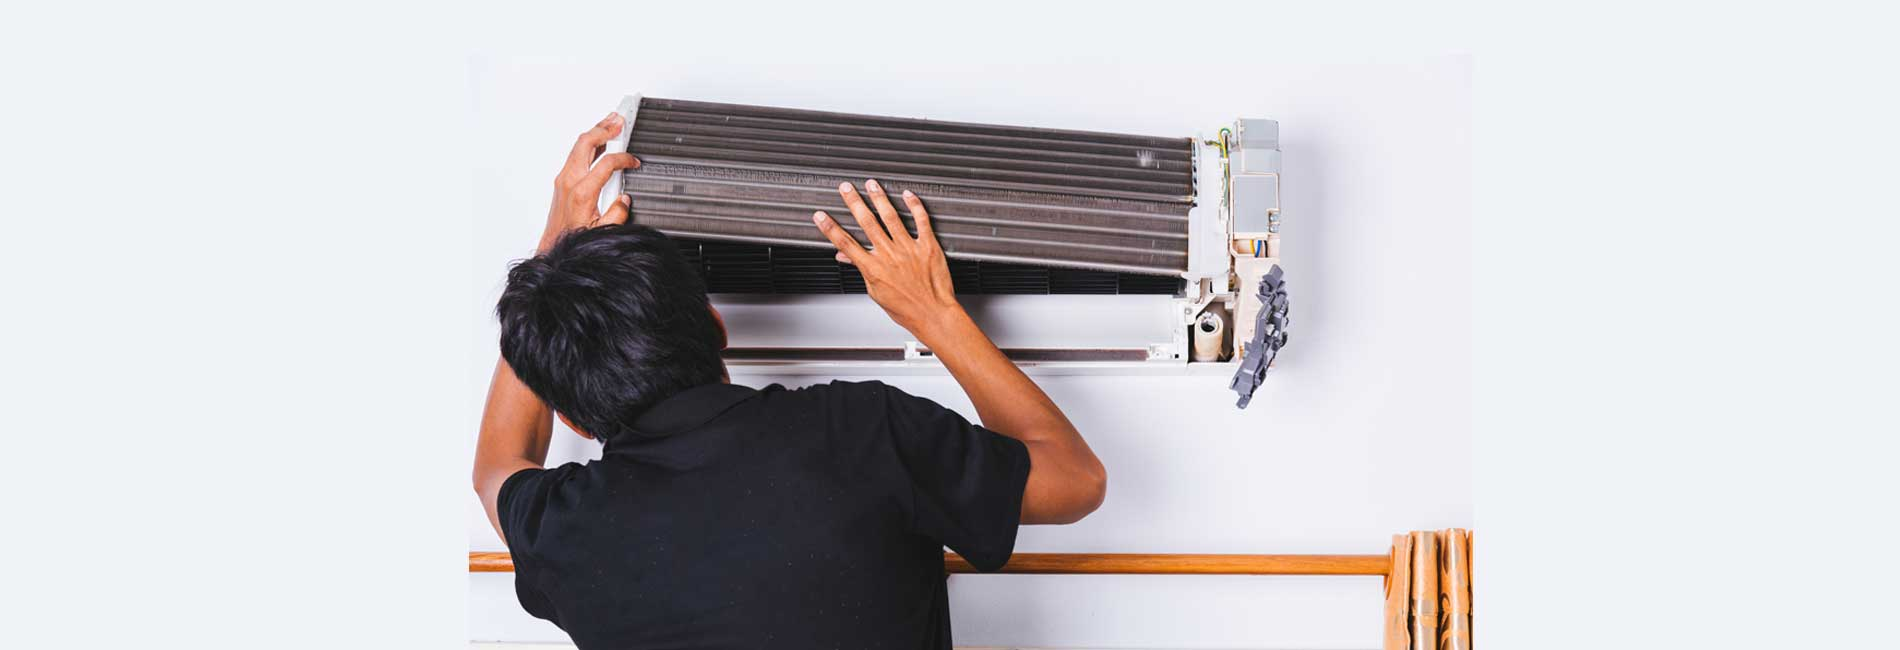 Hitachi AC Repair in palanthandalam